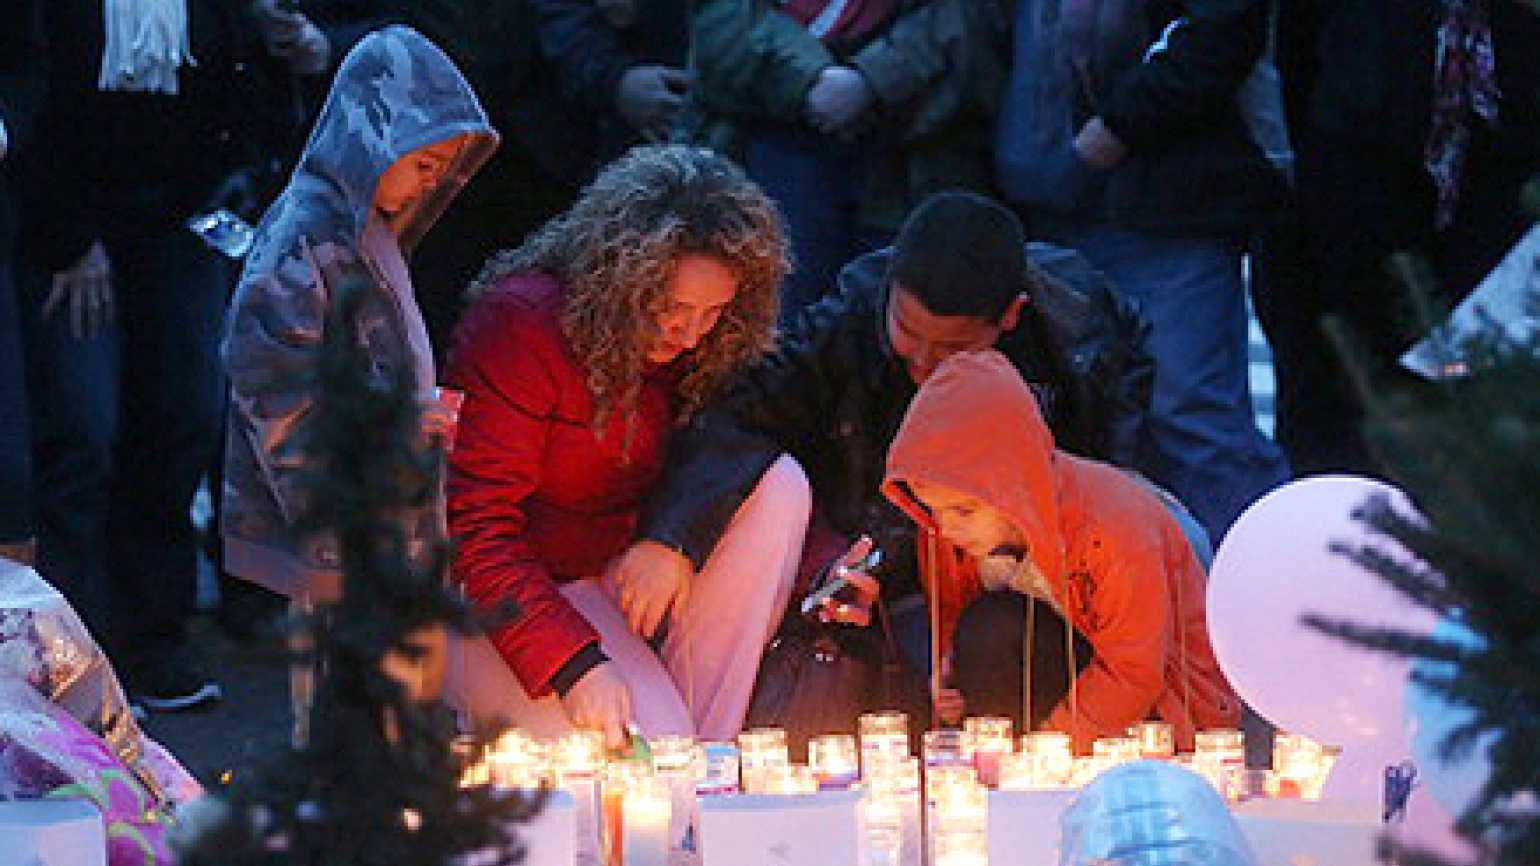 Mourners gather to pray and light candles in the darkness